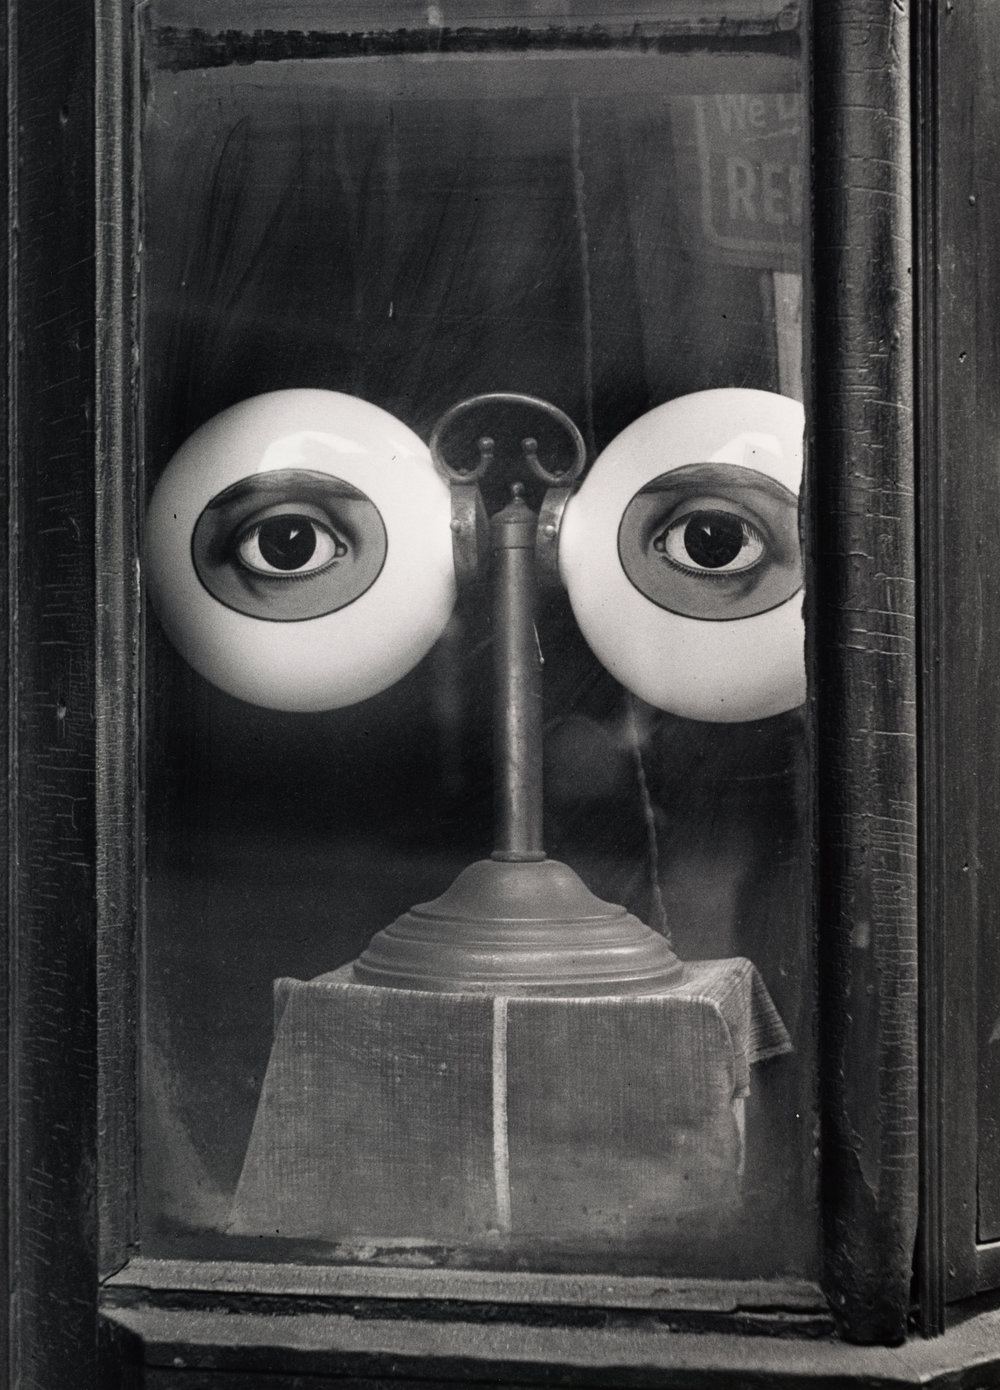 Optician's Shop Window (B) , New York, 1939 Gelatin silver print © Condé Nast